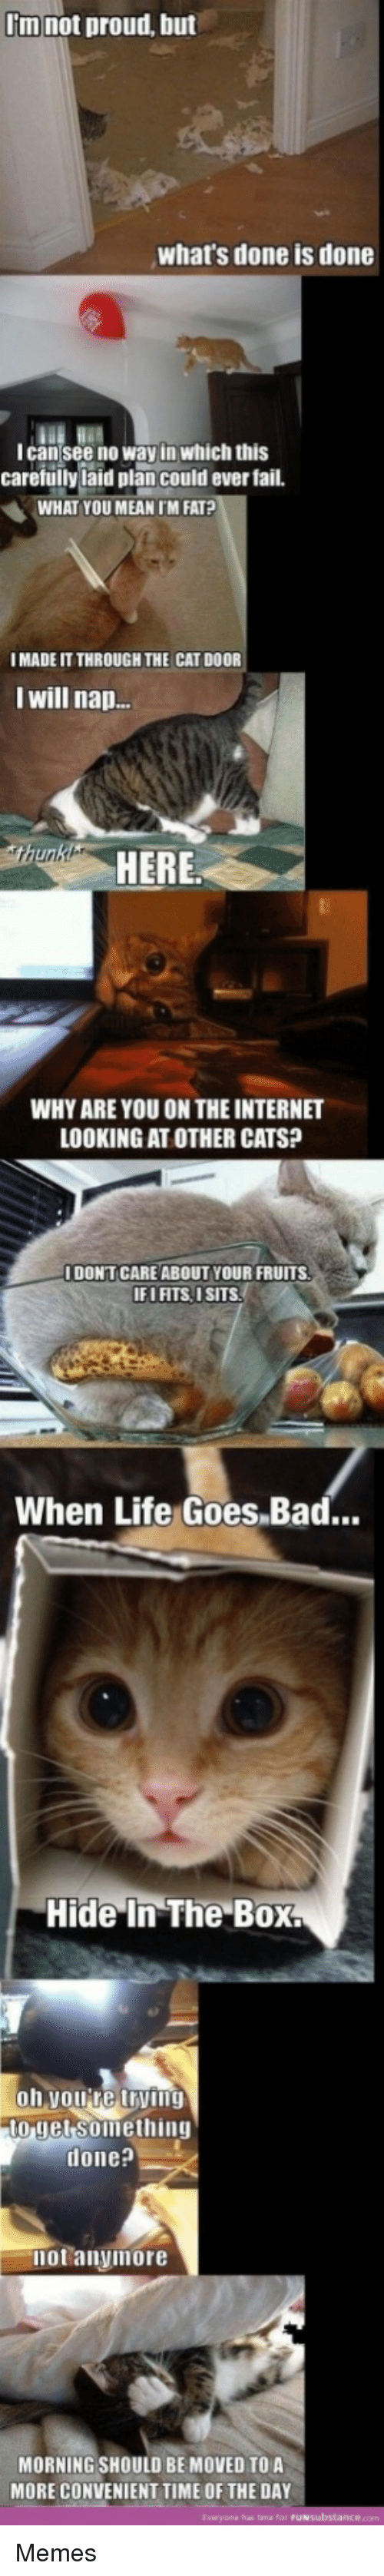 Im Fat: I'm not proud, but  what's done is done  lcan see no way in which this  carefullyiaid plan could ever fail.  WHAT YOU MEAN IM FAT?  I MADE IT THROUGH THE CAT DOOR  I will nap.  HERE  WHY ARE YOU ON THE INTERNET  LOOKING AT OTHER CATS?  I DONTCARE ABOUT YOUR FRUITS  IFI FITS, 1SITS  When Life Goes.Bad..  Hide In The Box  o jet Soimething  done?  not anyimore  MORNING SHOULD BE MOVED TO A  MORE CONVENIENT TIME OF THE DAY  Eviryona has tane for Memes